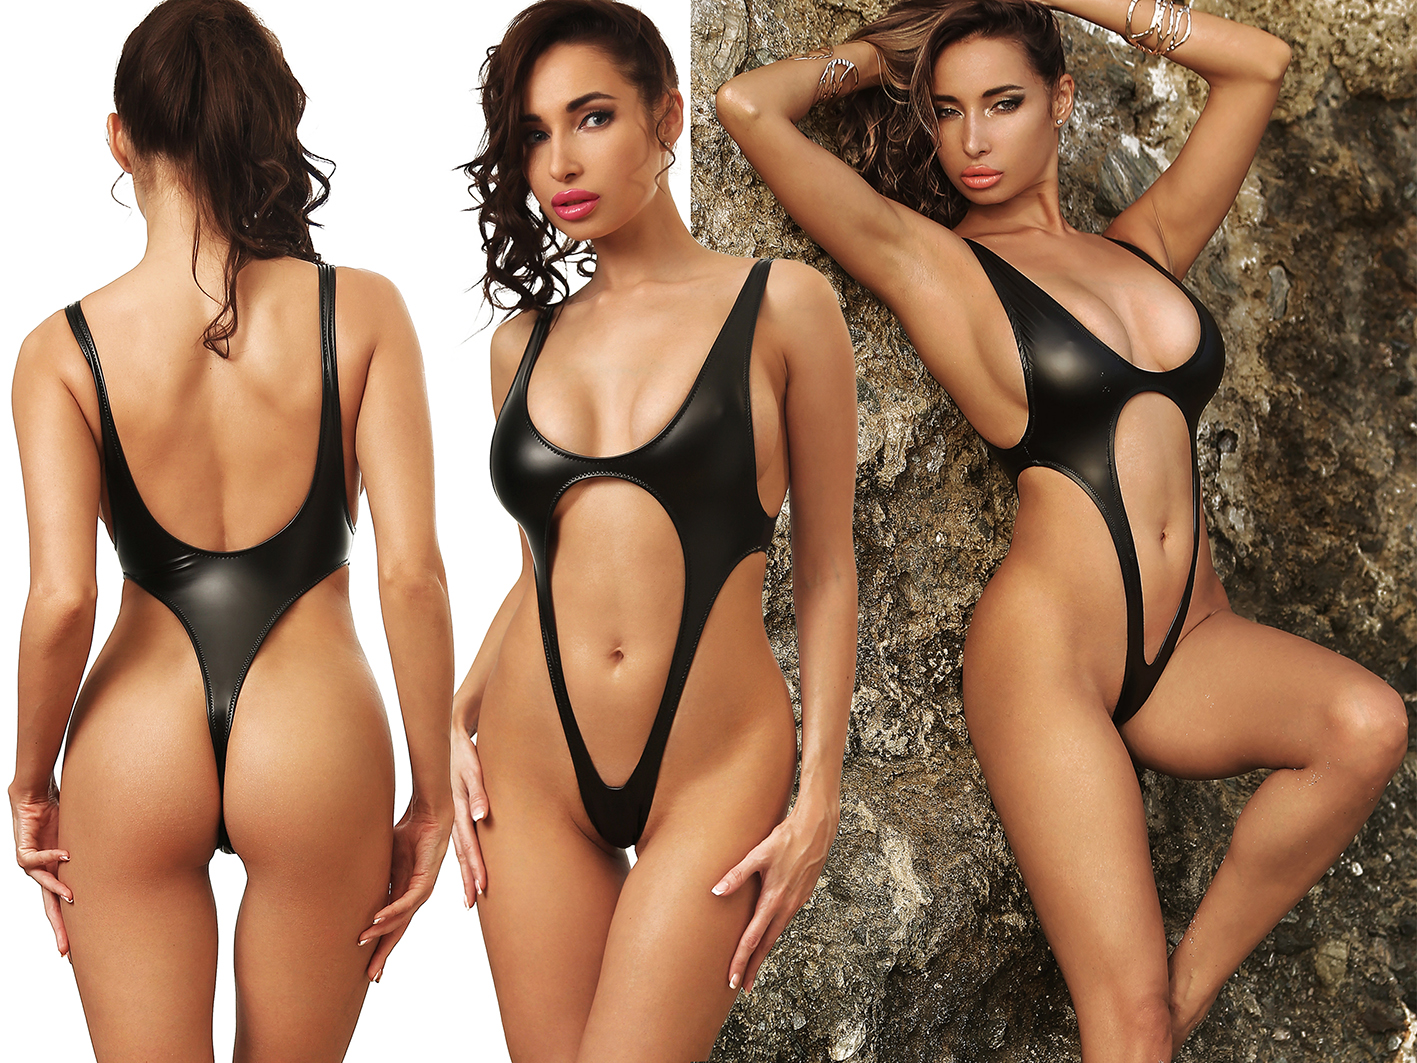 latex black one piece swimsuit extreme exotik thong low open back monokini high cut waist leg